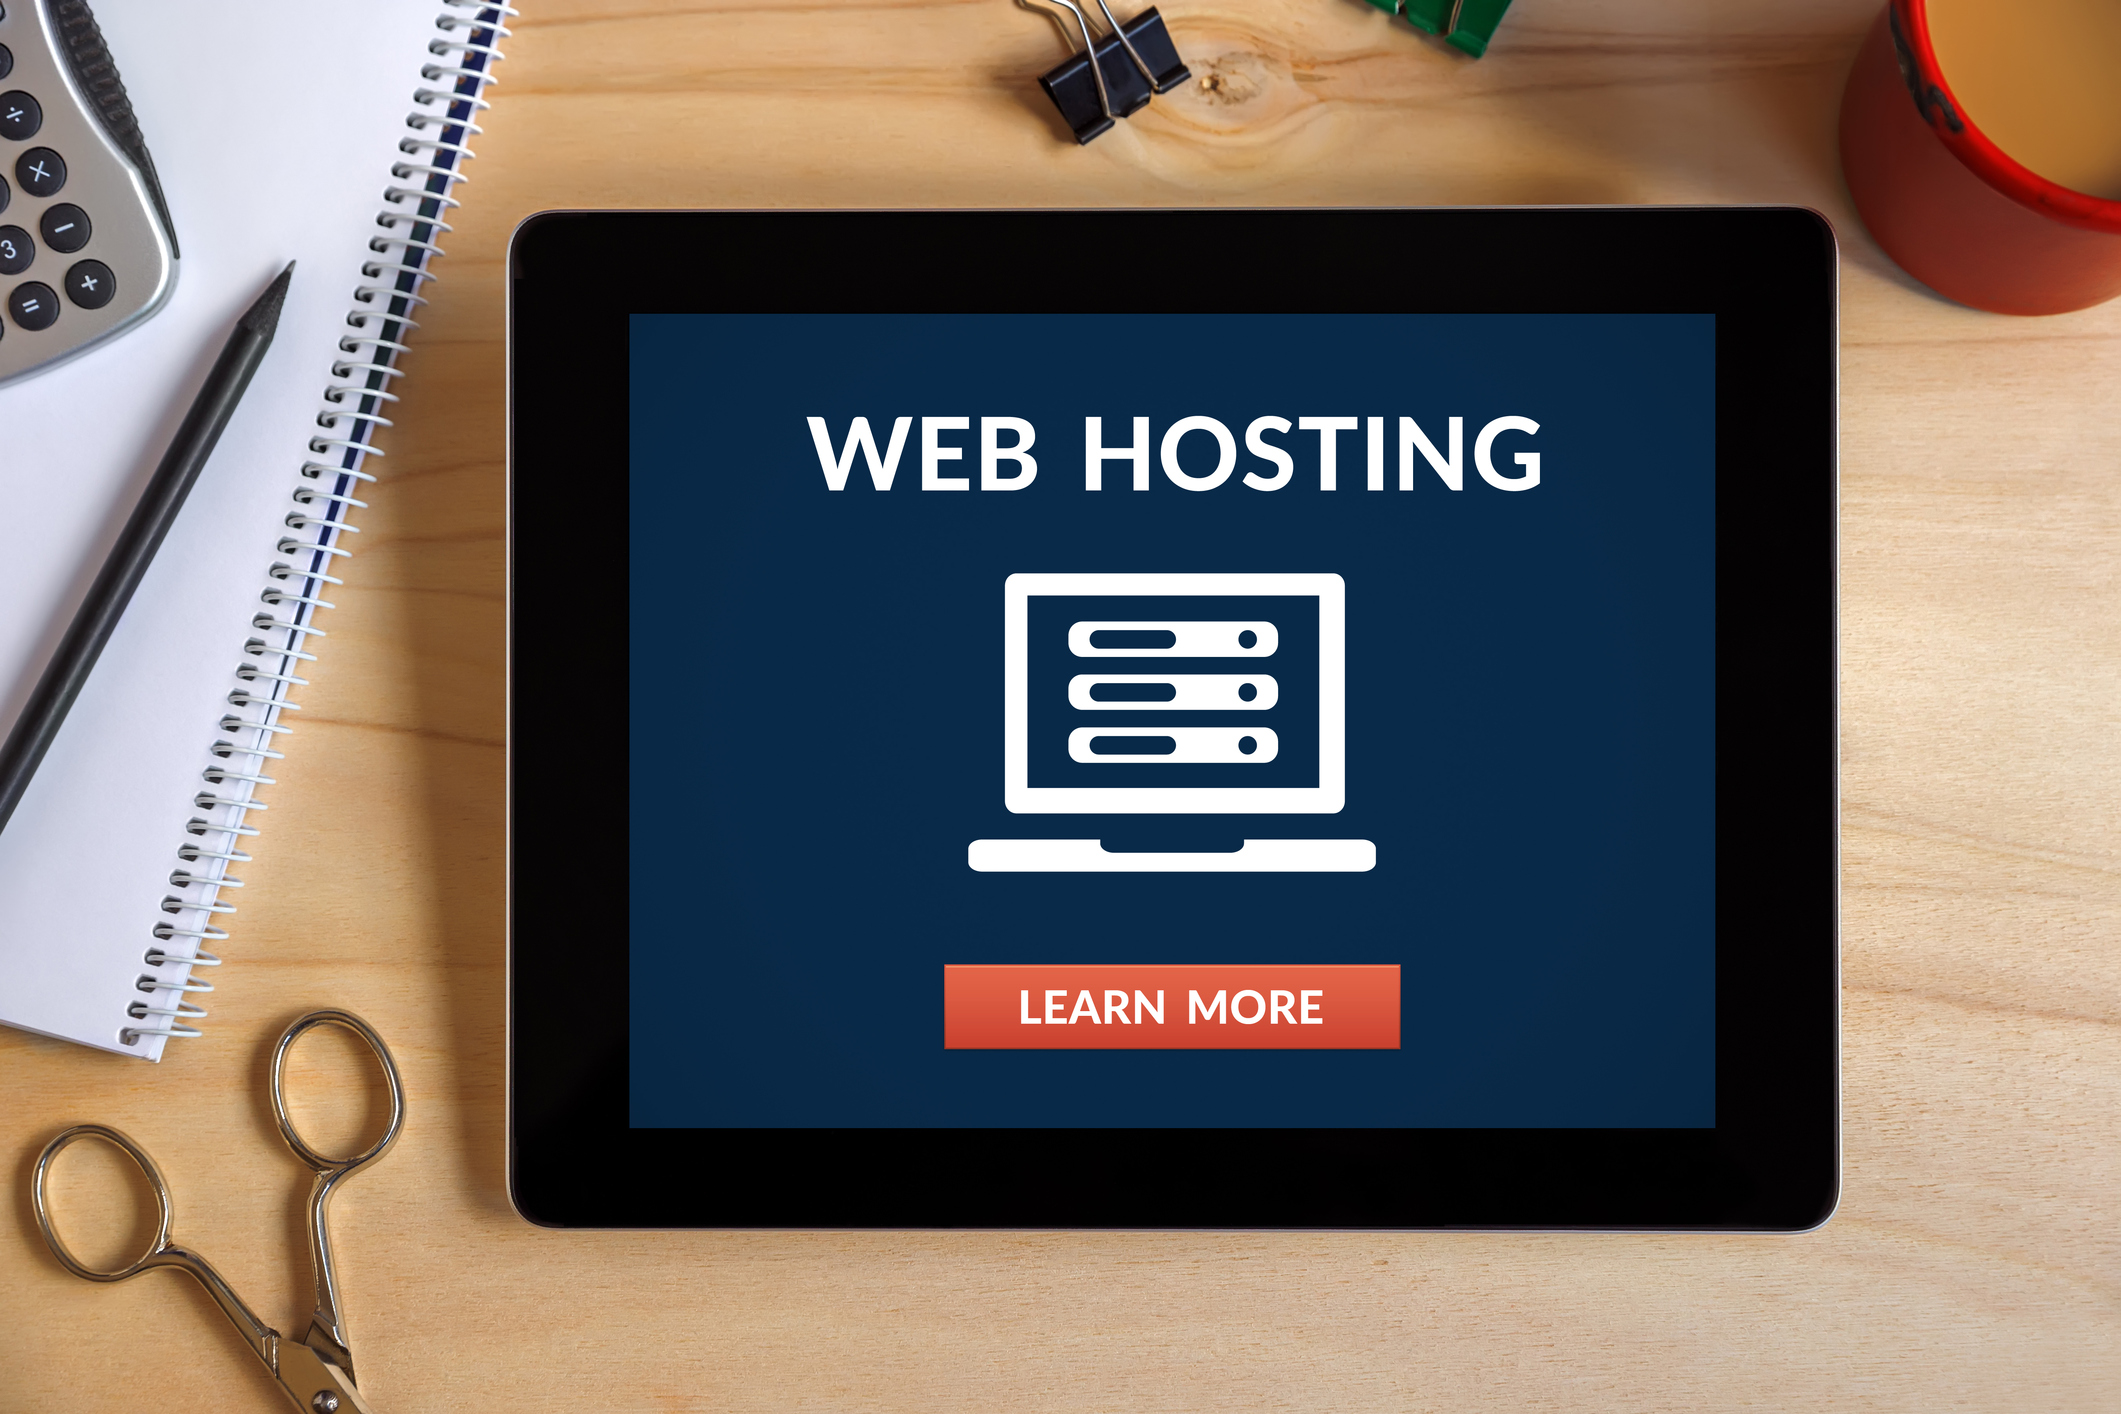 Bluehost.com – The Host of Choice for 2 Million Domains, and Counting